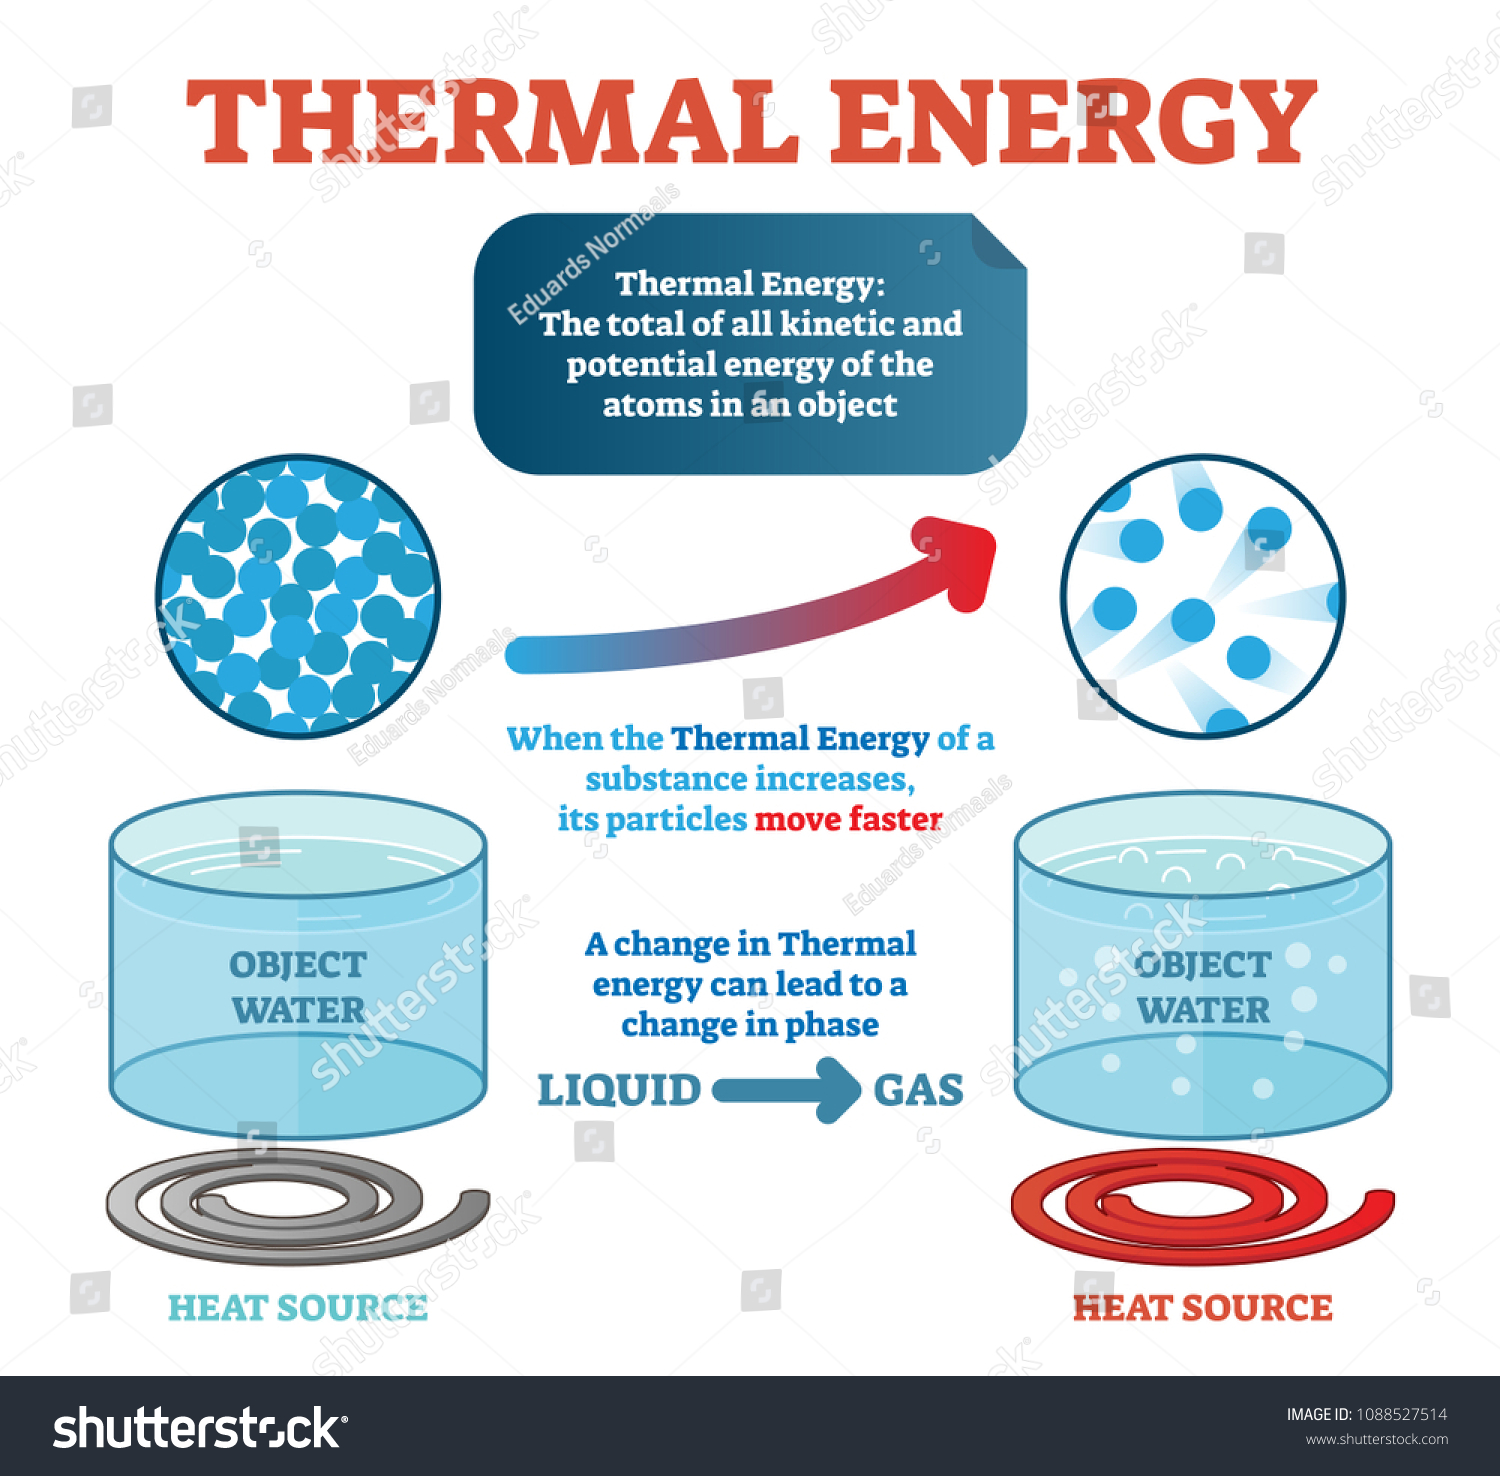 Thermal Energy Definition